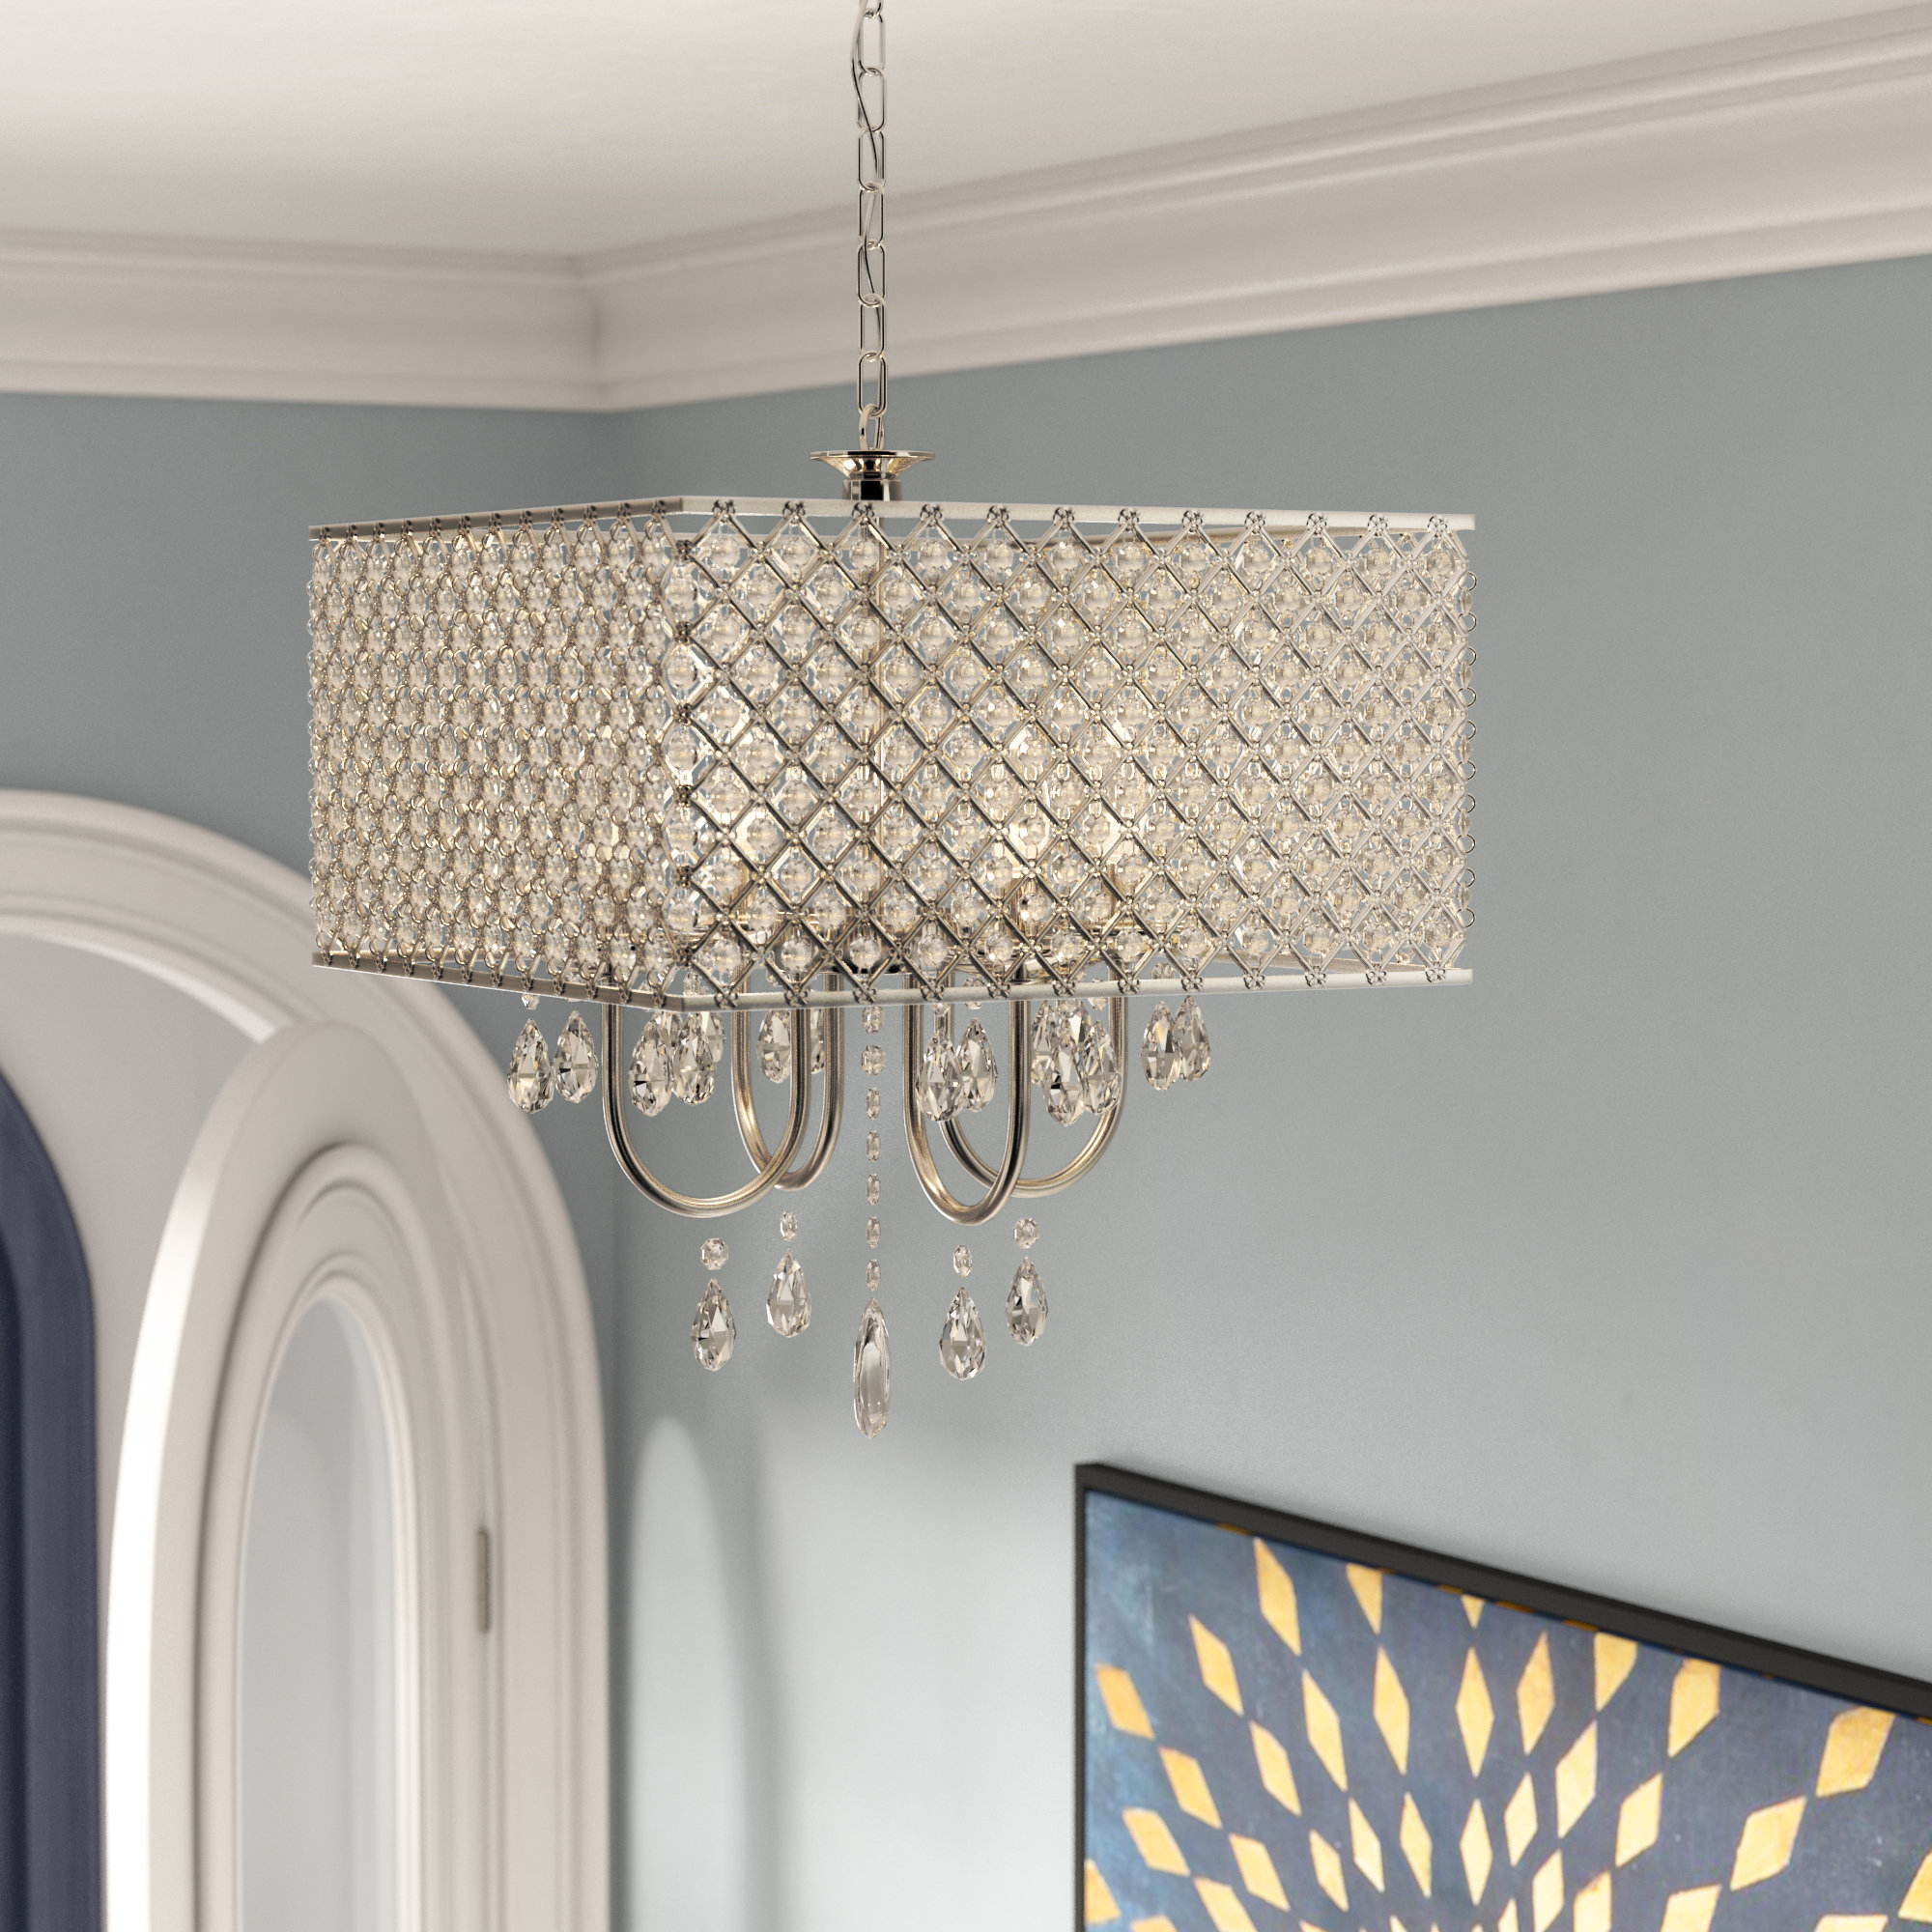 Most Recent Aurore 4 Light Crystal Chandeliers Within Garrin Square 4 Light Crystal Chandelier (View 15 of 20)